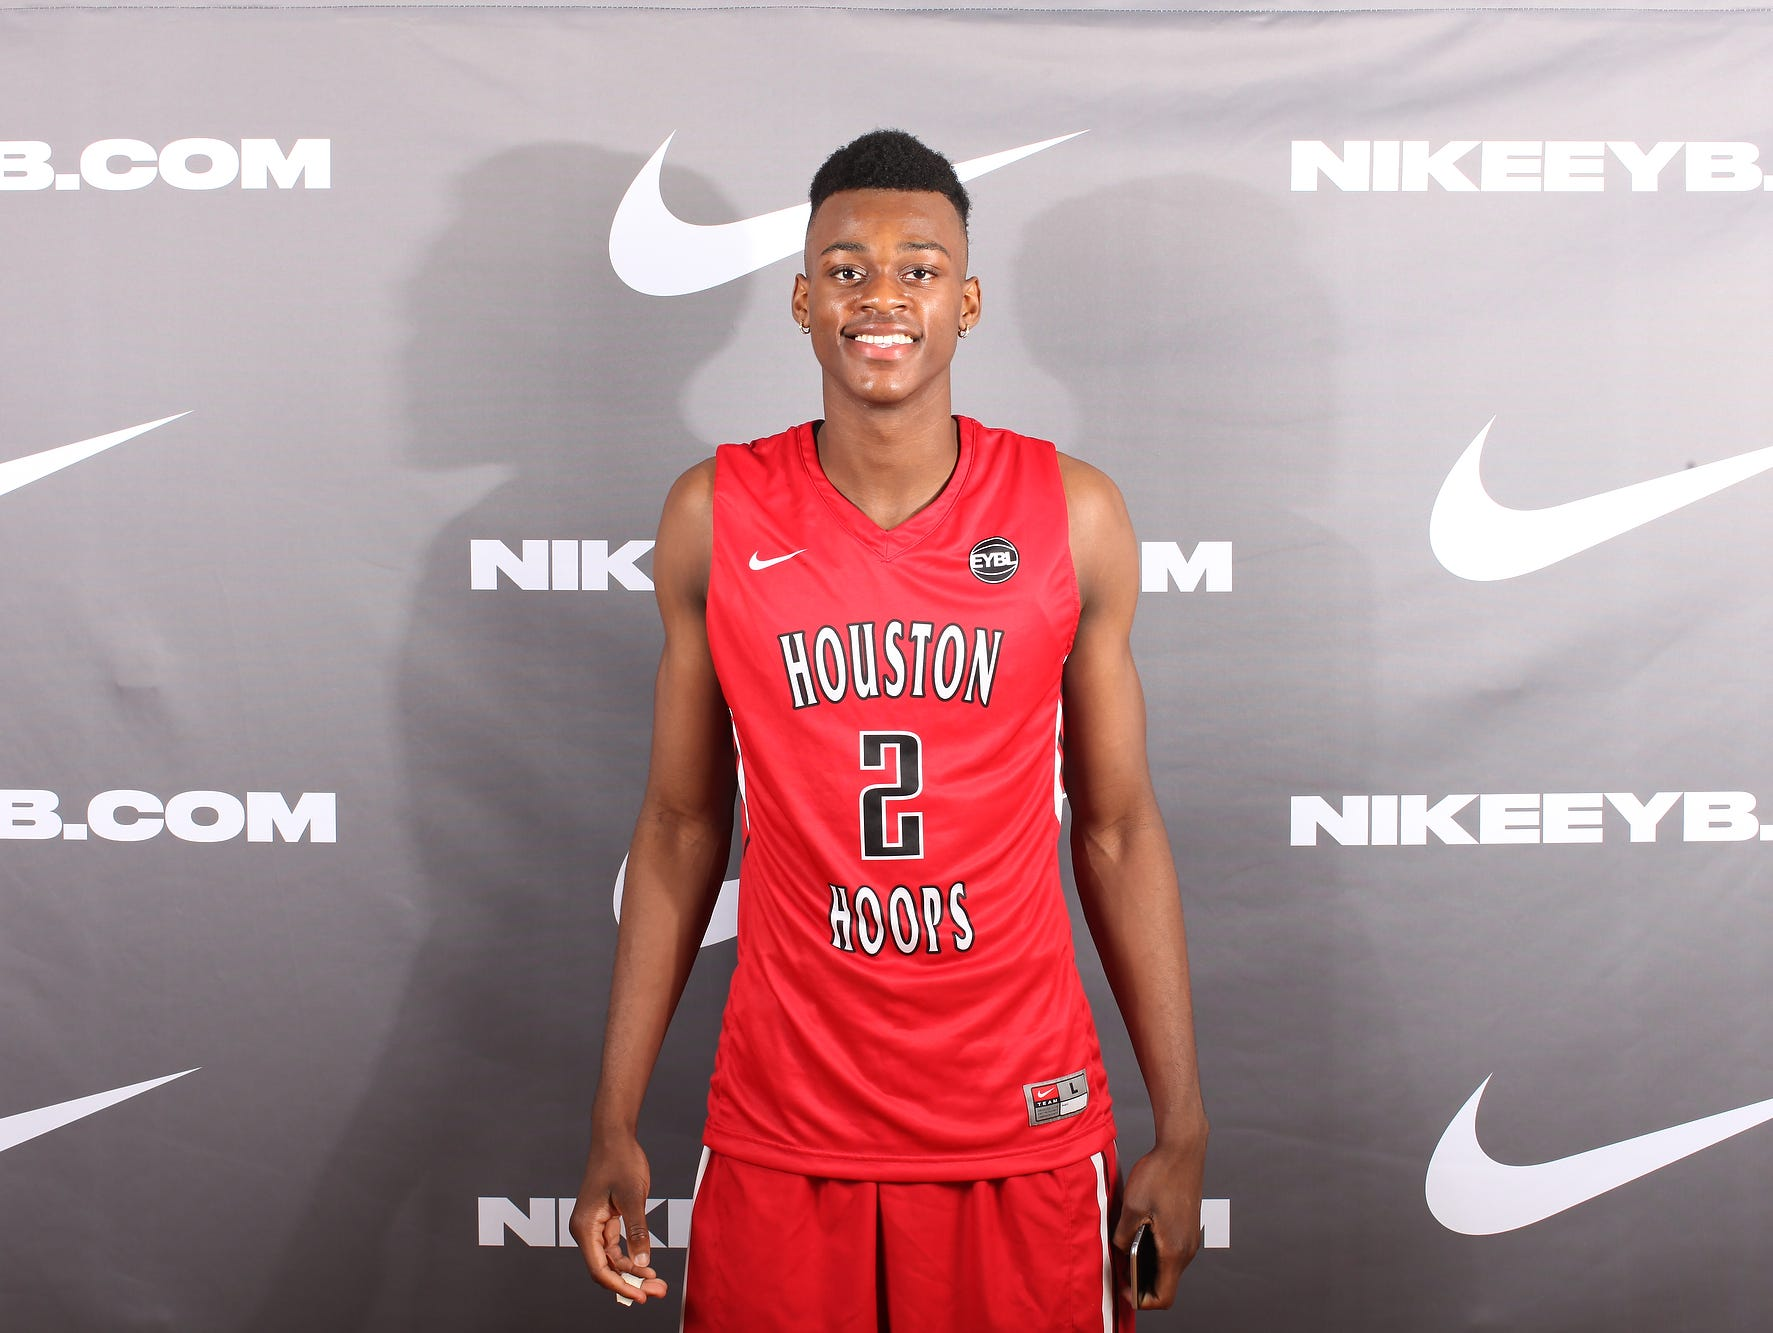 Jarred Vanderbilt is a five-star forward in the Class of 2017. He's a Kentucky target and former AAU teammate of incoming Wildcats point guard De'Aaron Fox.